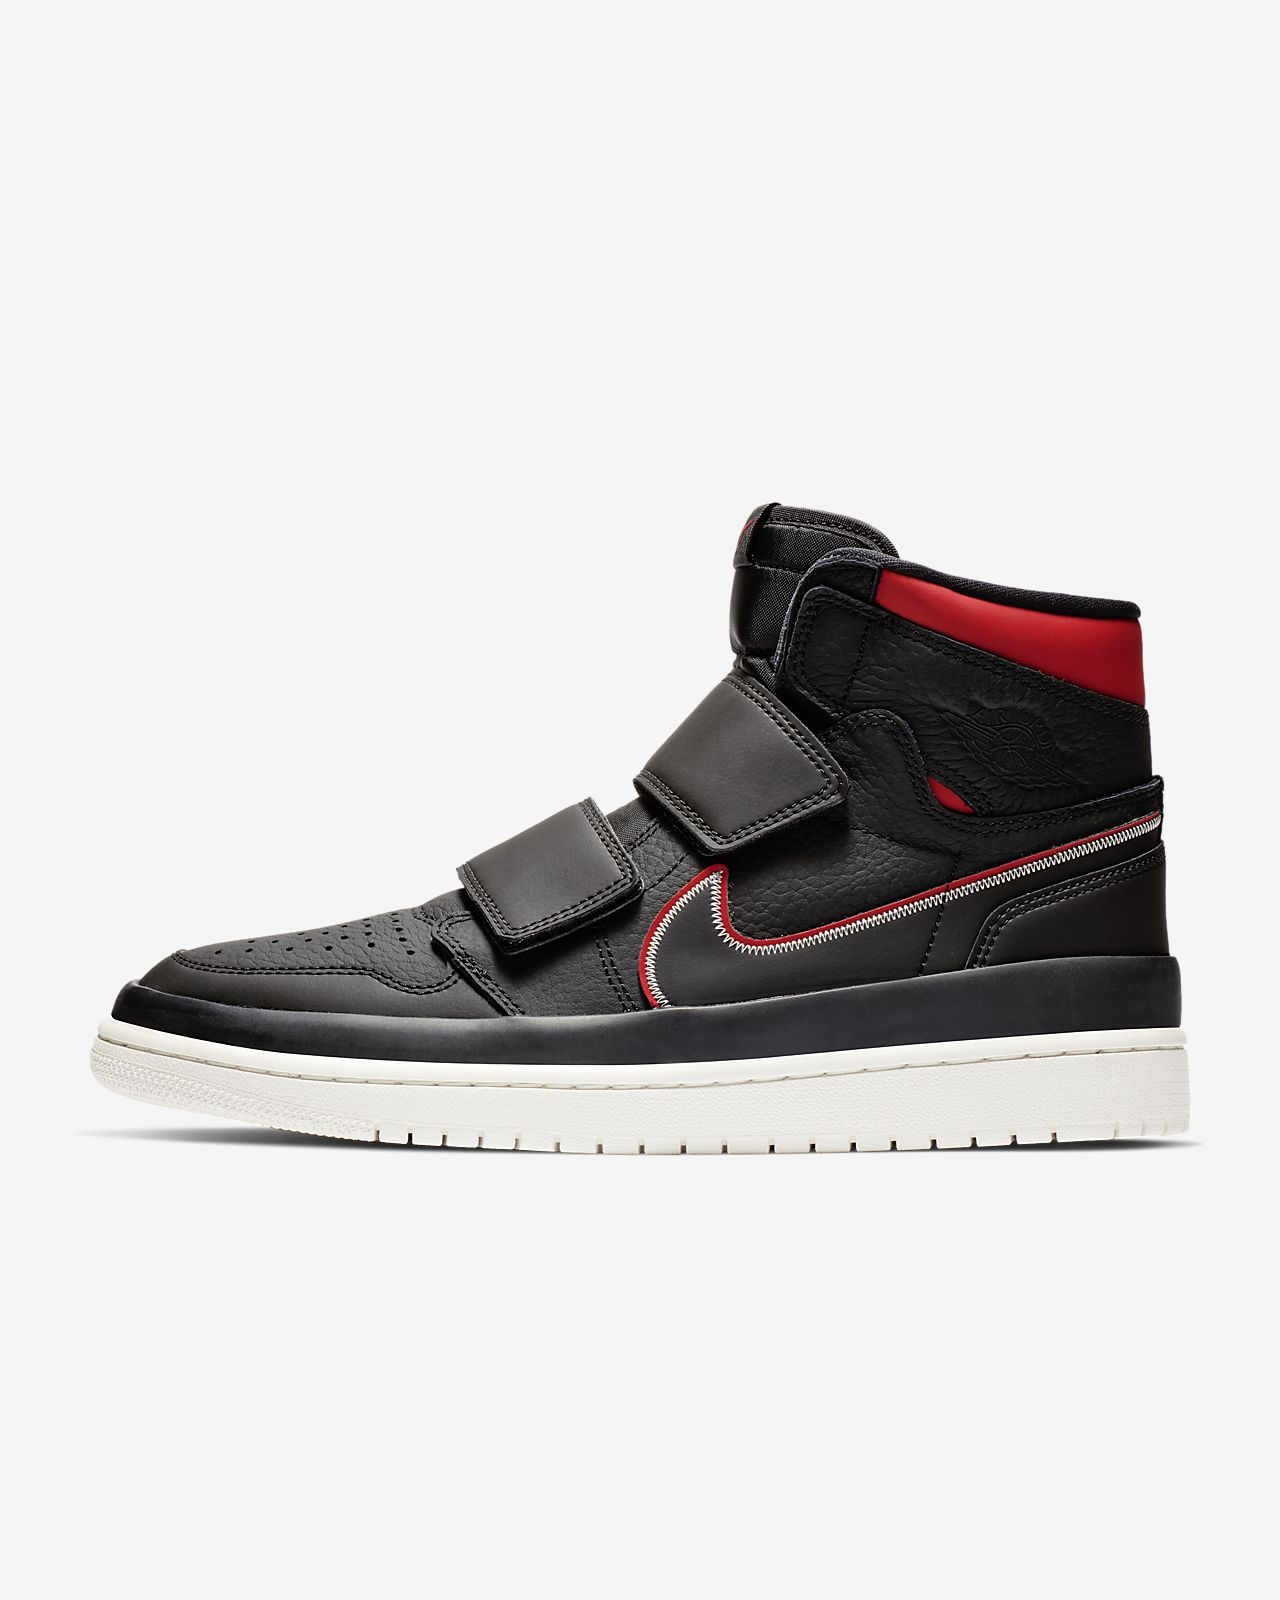 3c3872c35a1a Air Jordan 1 Retro High Double Strap Men s Shoe. Nike.com